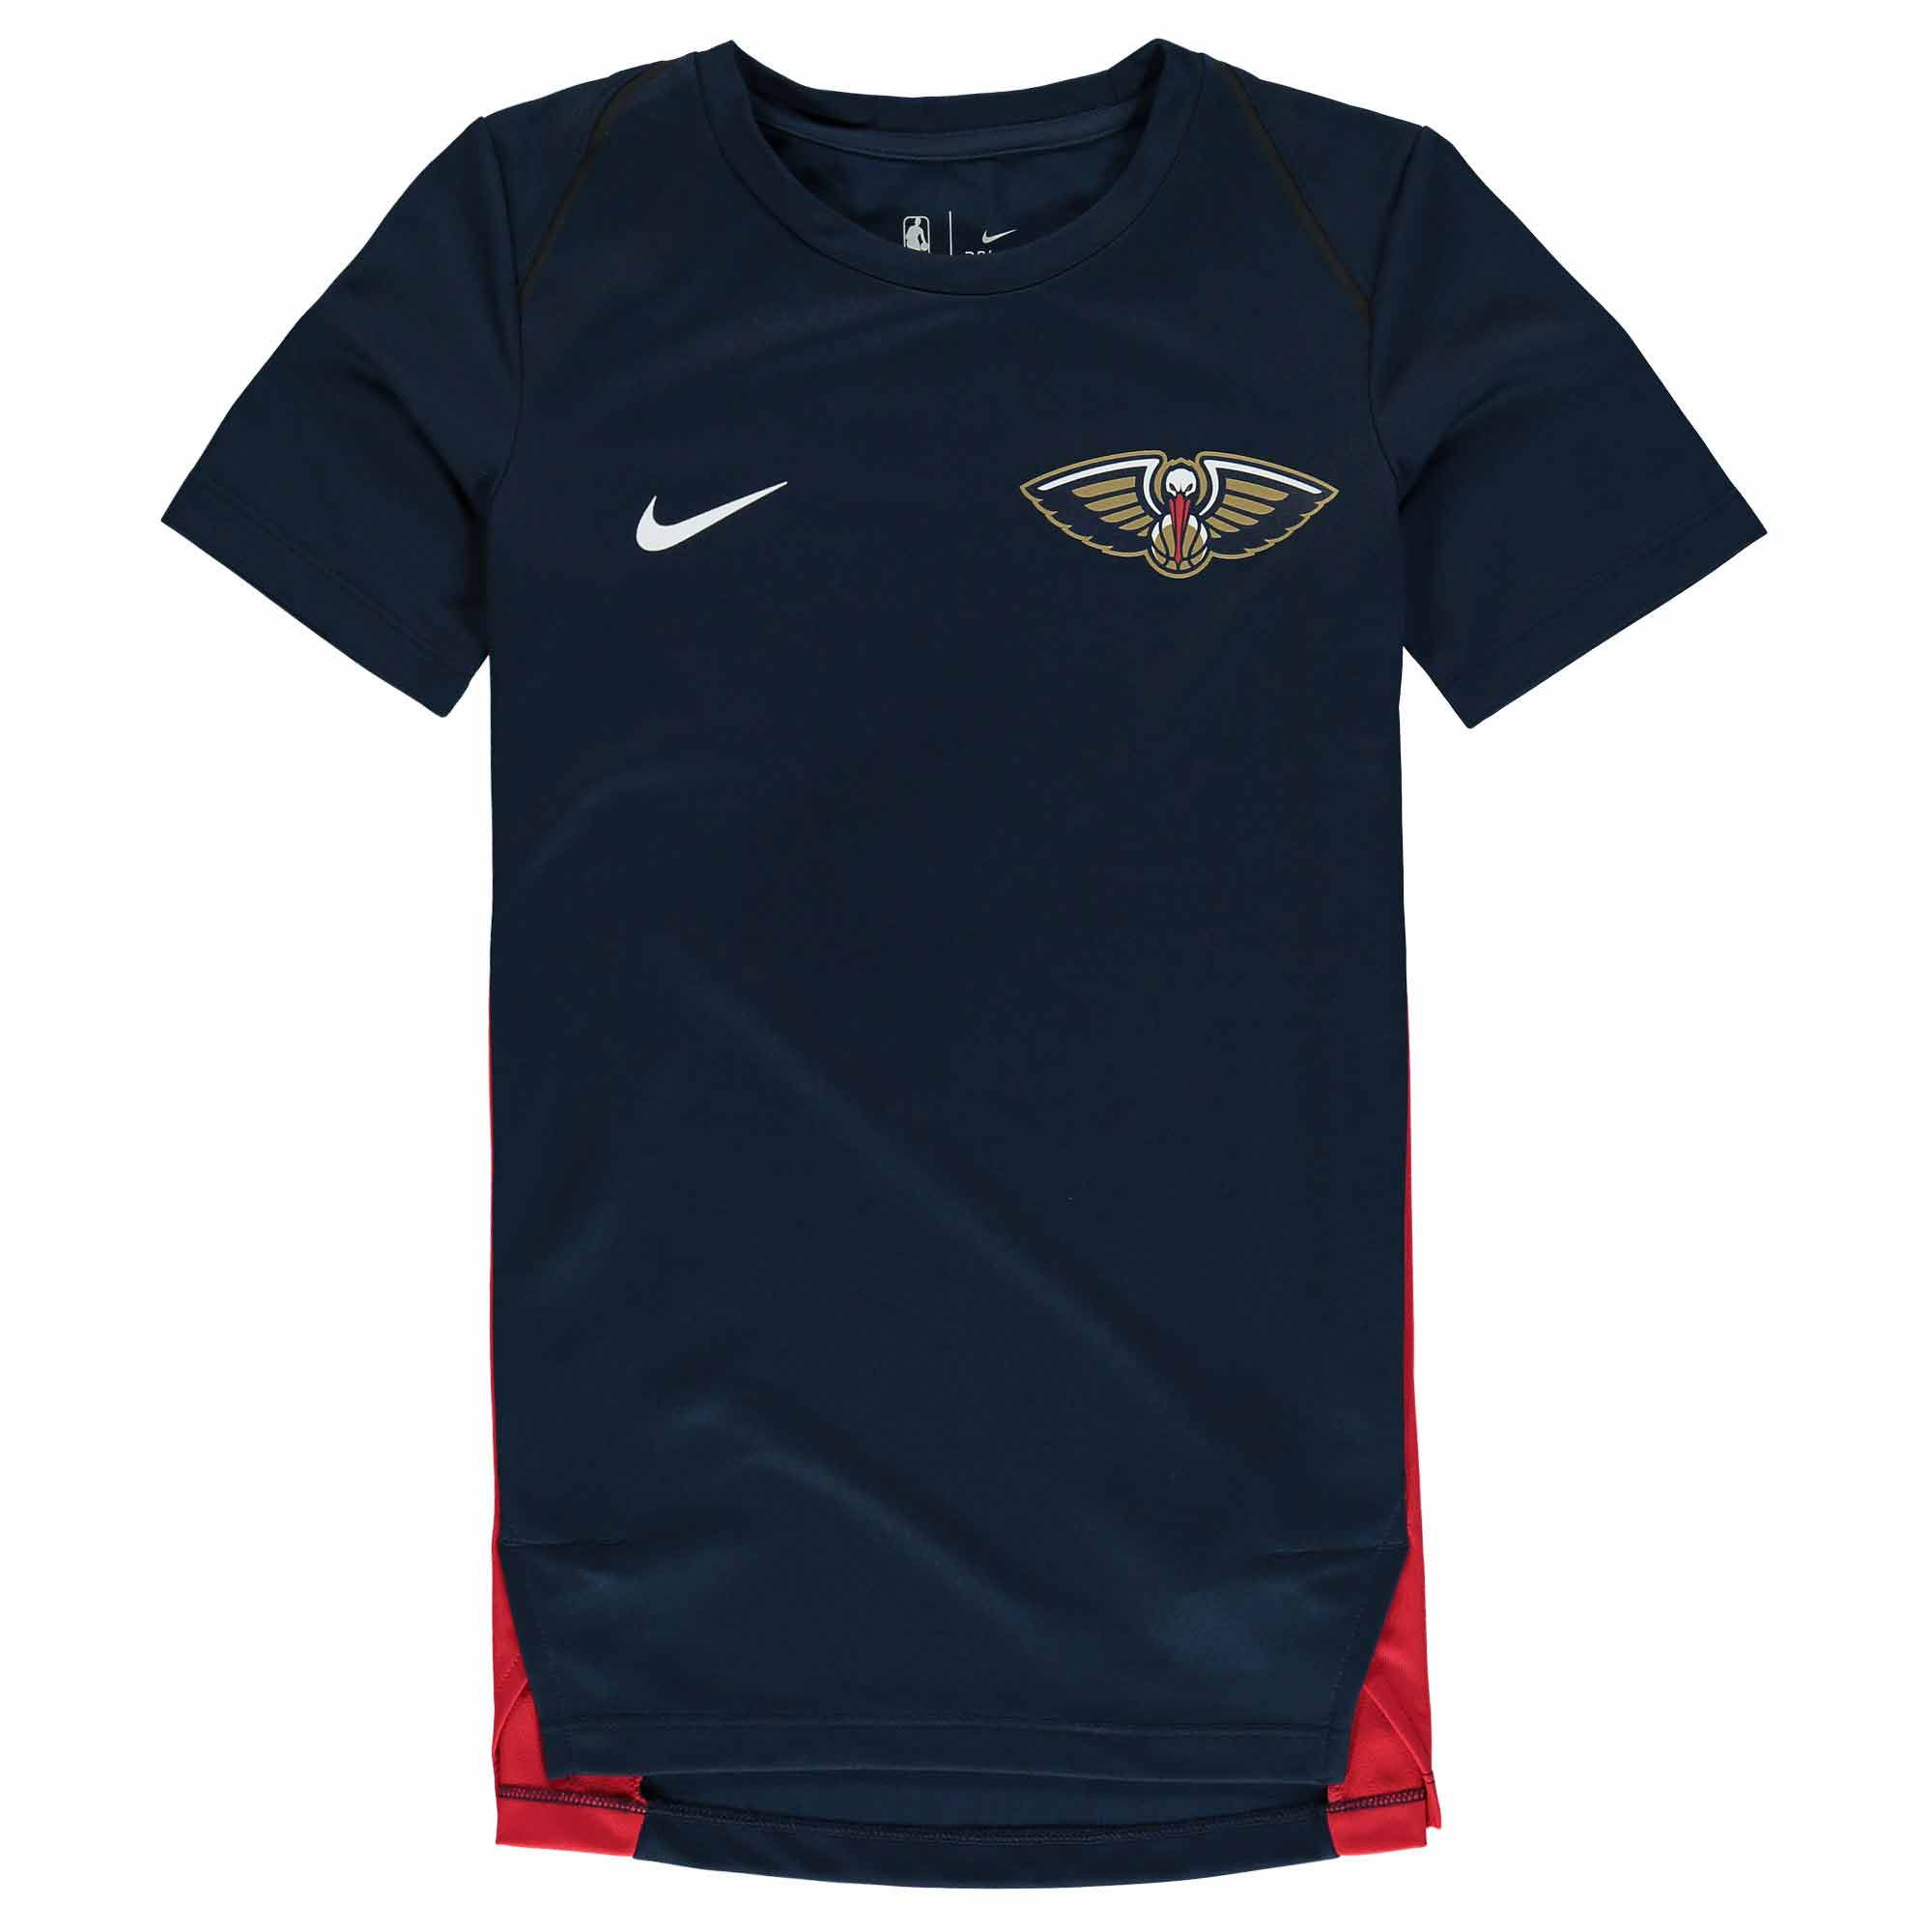 New Orleans Pelicans Nike Youth Hyperelite Shooter Performance T-Shirt - Navy